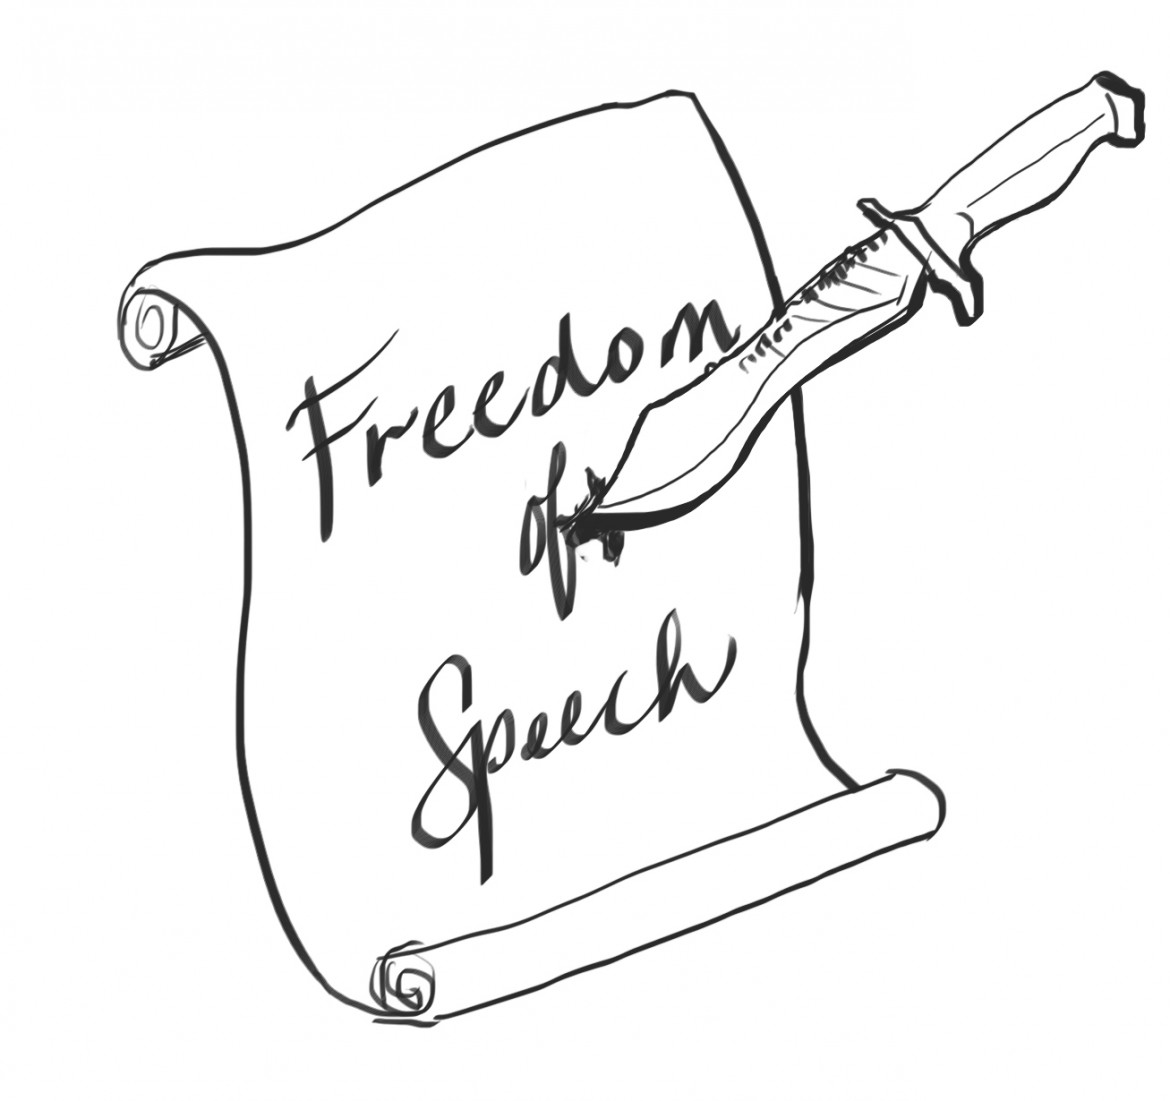 Editorial: freedom of speech in an era of political